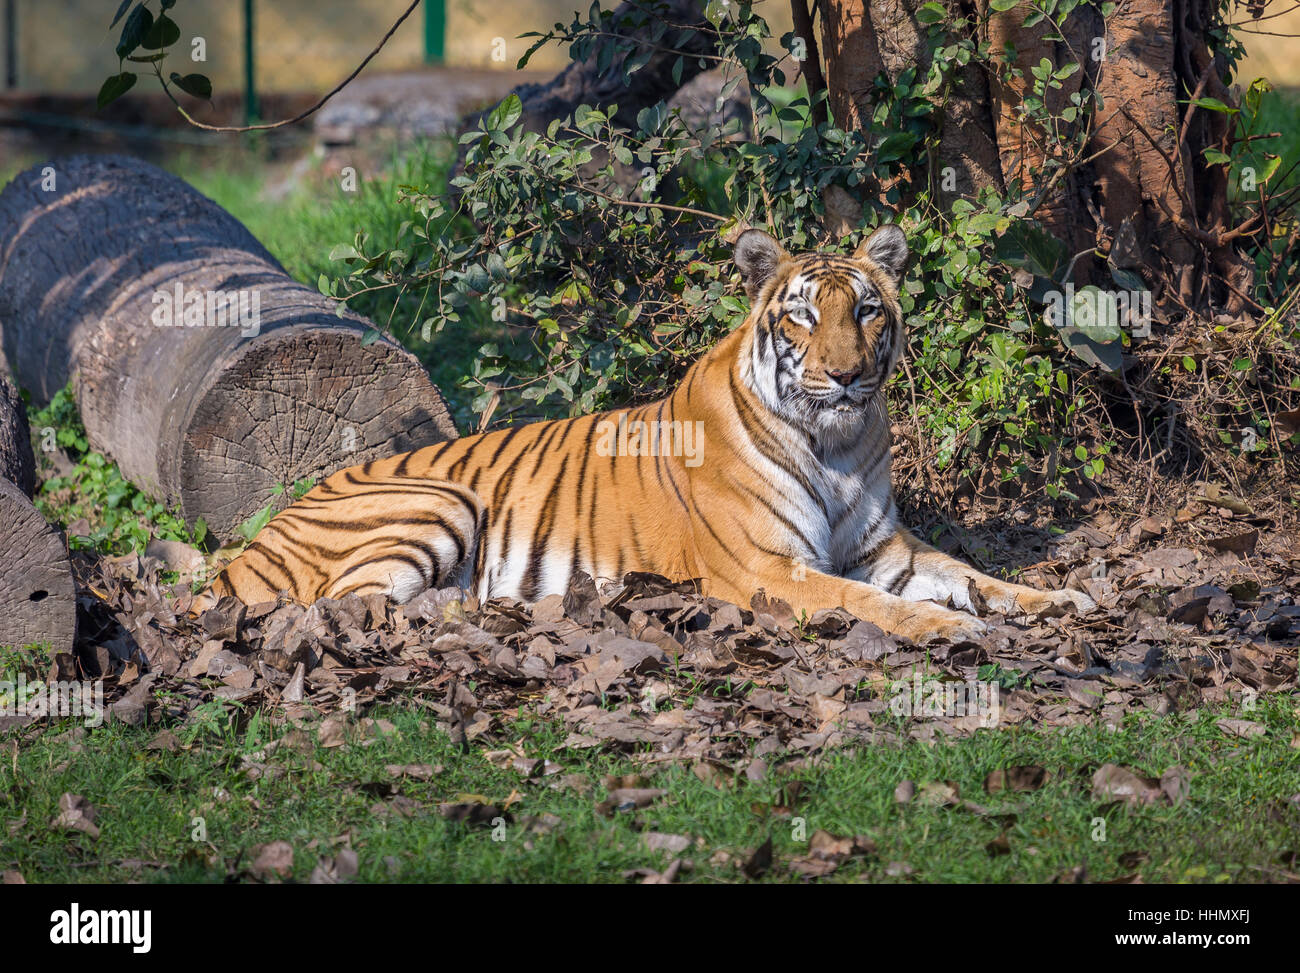 Bengal tiger resting in his confinement at an animal wildlife sanctuary in India. - Stock Image